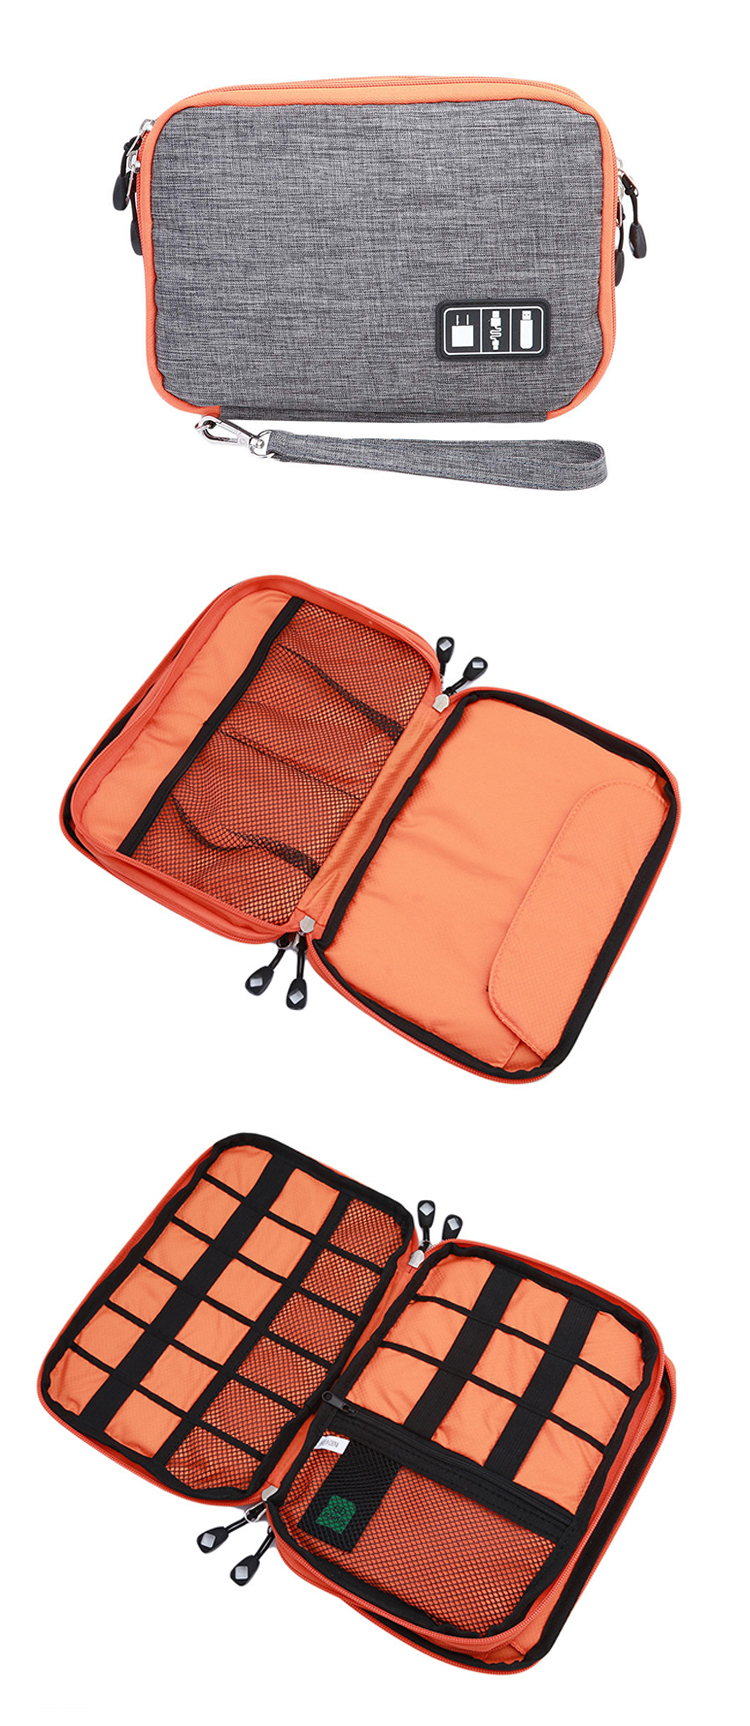 Honana HN-CB1 Double Layer Cable Storage Bag Electronic Accessories Organizer Travel Gear